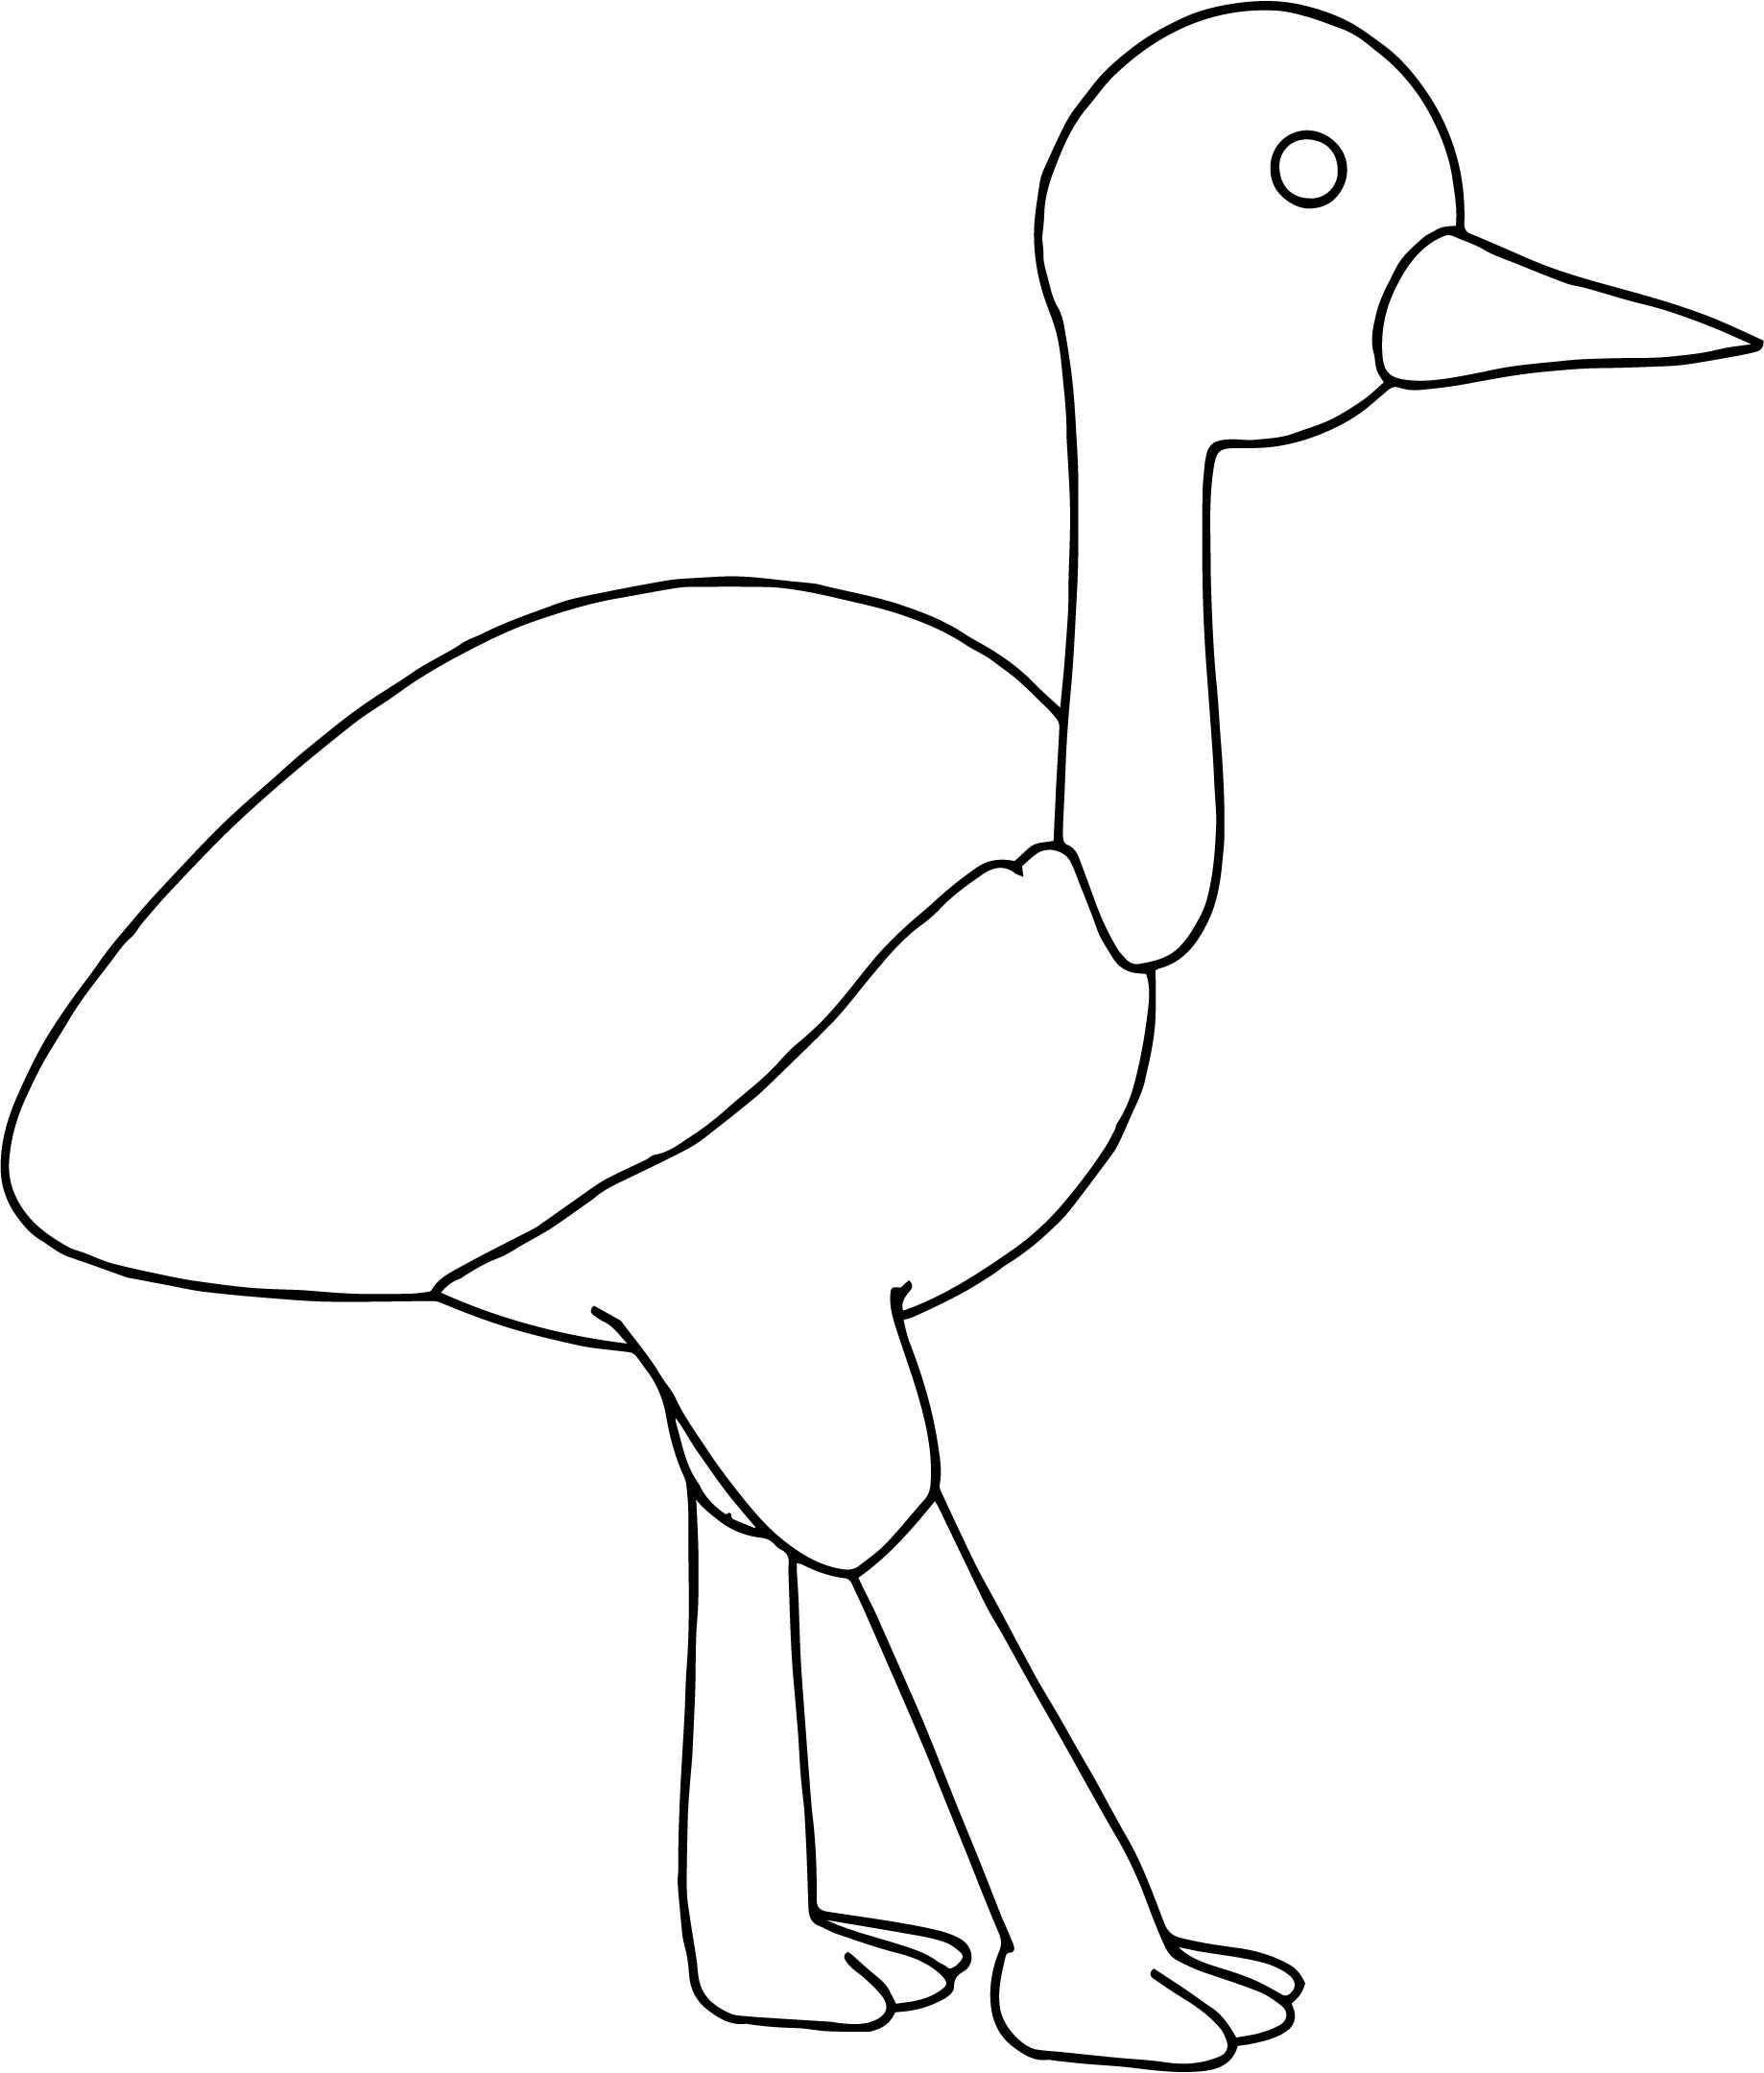 Beautiful Toy Swan Walking Black White Coloring Page For Color Sheet